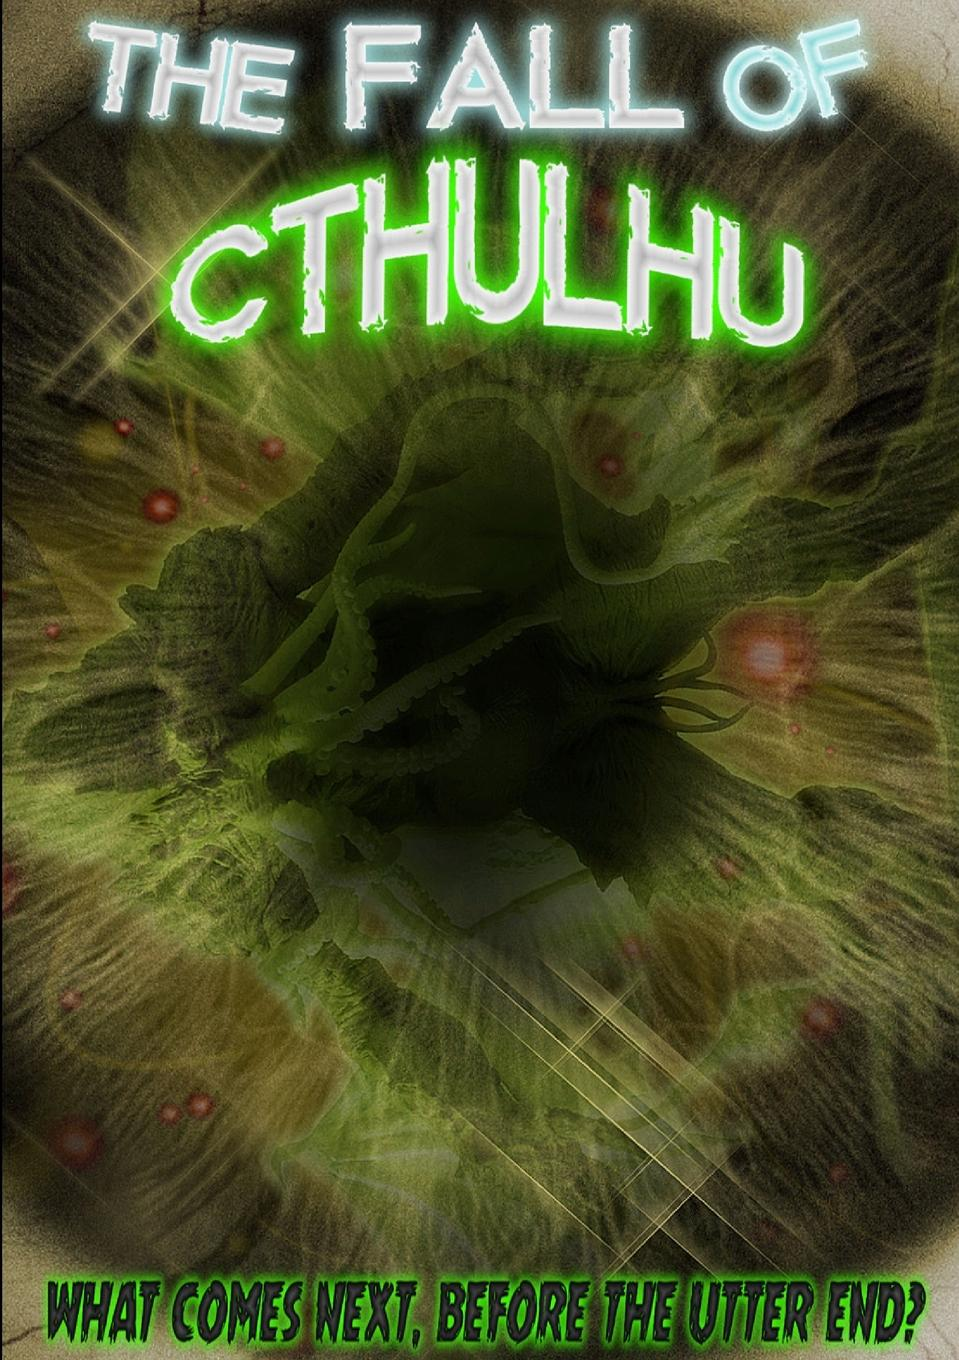 Horrified Press The Fall of Cthulhu rob bell drops like stars a few thoughts on creativity and suffering